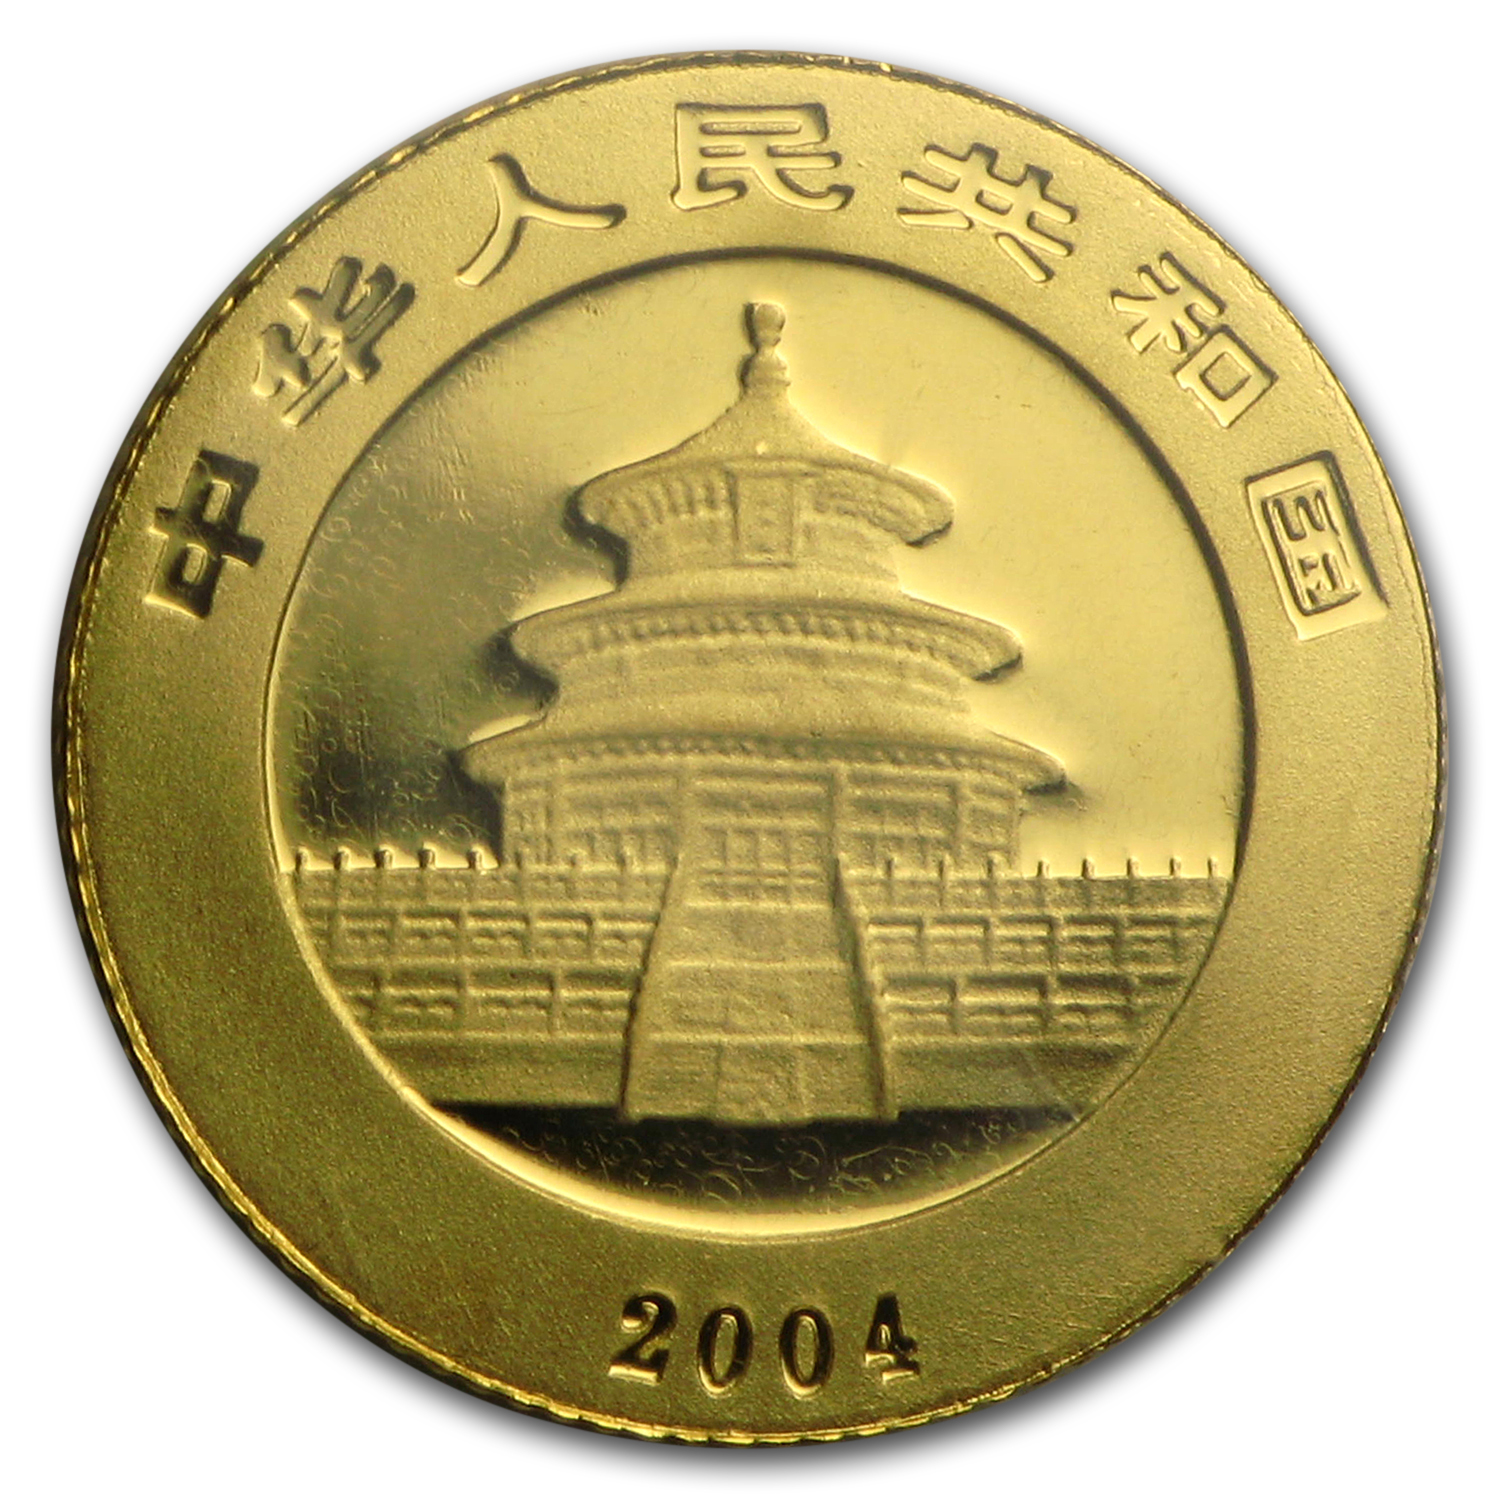 2004 1/20 oz Gold Chinese Panda BU (Sealed)